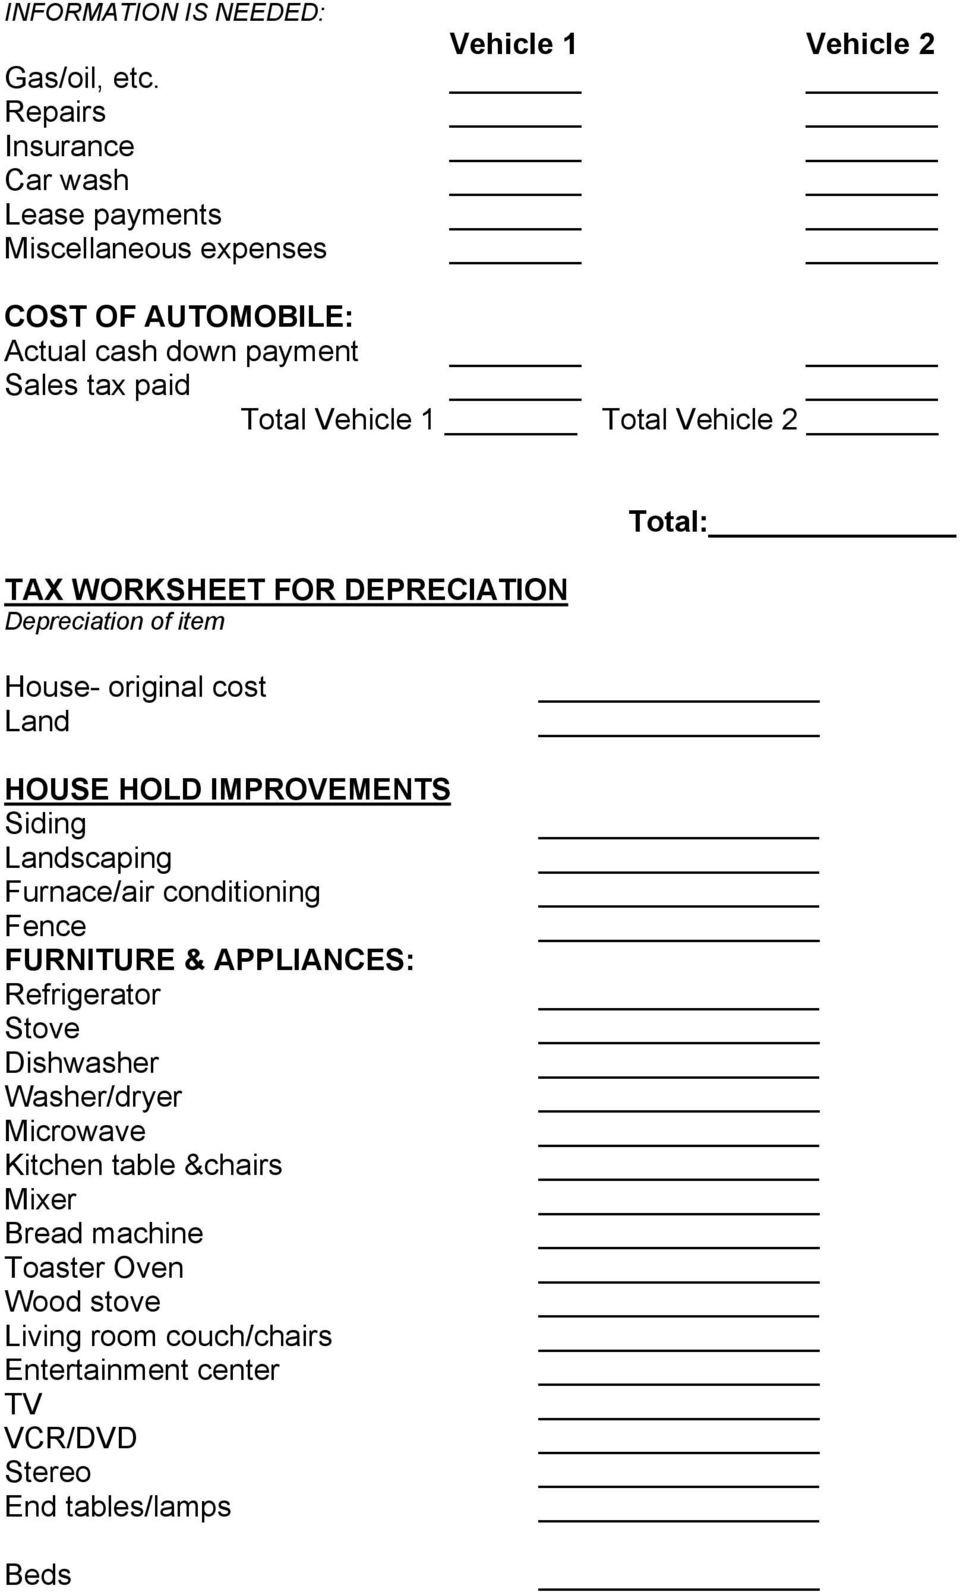 Home Daycare Tax Worksheet Child Care Business form for Taxes Pdf Free Download